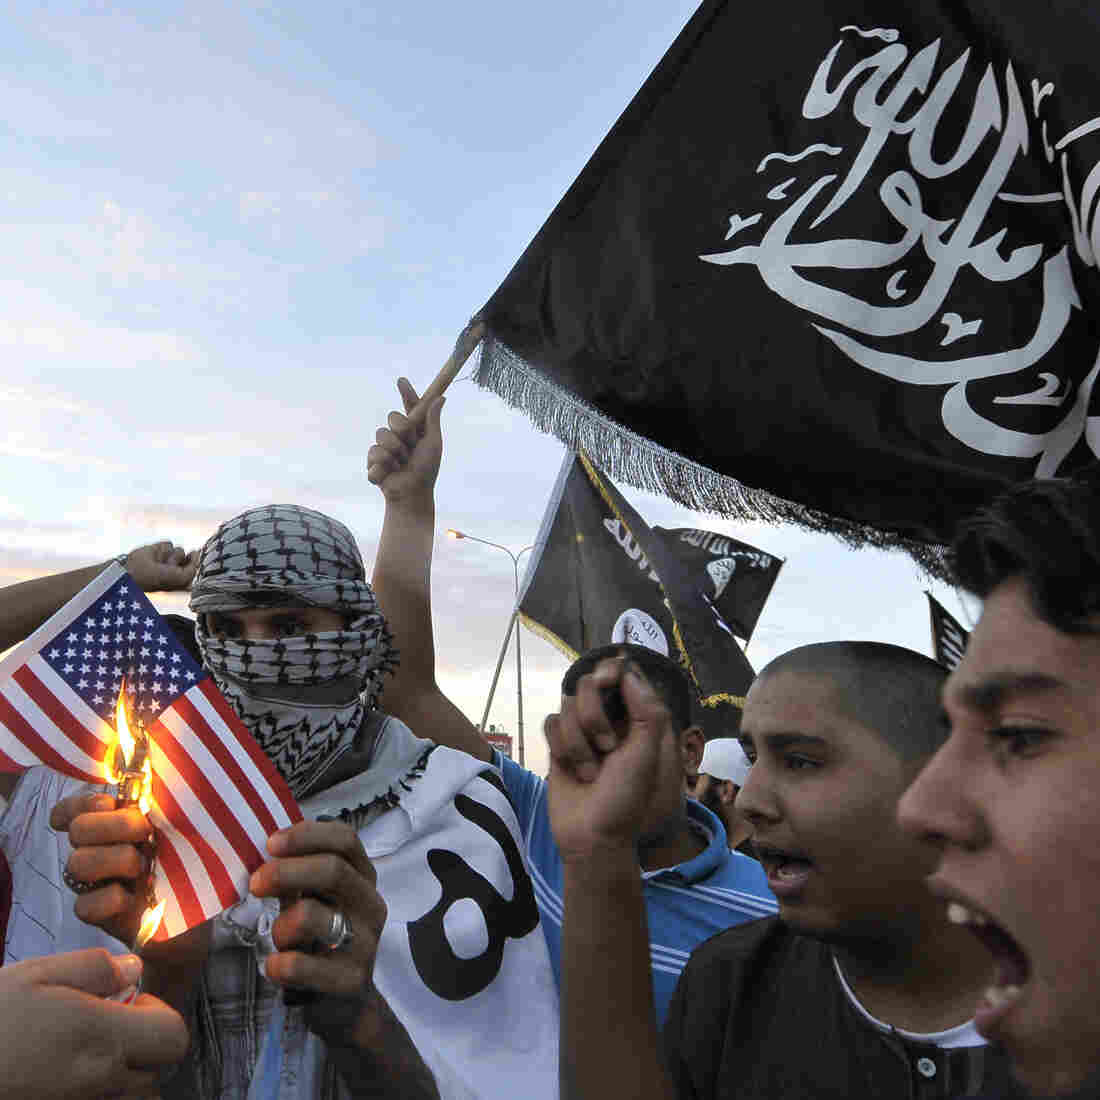 Libyan protesters burn a replica of the U.S. flag on Monday during a demonstration against the capture of Abu Anas al-Libi. U.S. forces seized him Saturday in the Libyan capital Tripoli. He is accused of involvement in two U.S. embassy bombings in Africa in 1998 and is being held on a U.S. Navy ship in the Mediterranean Sea.